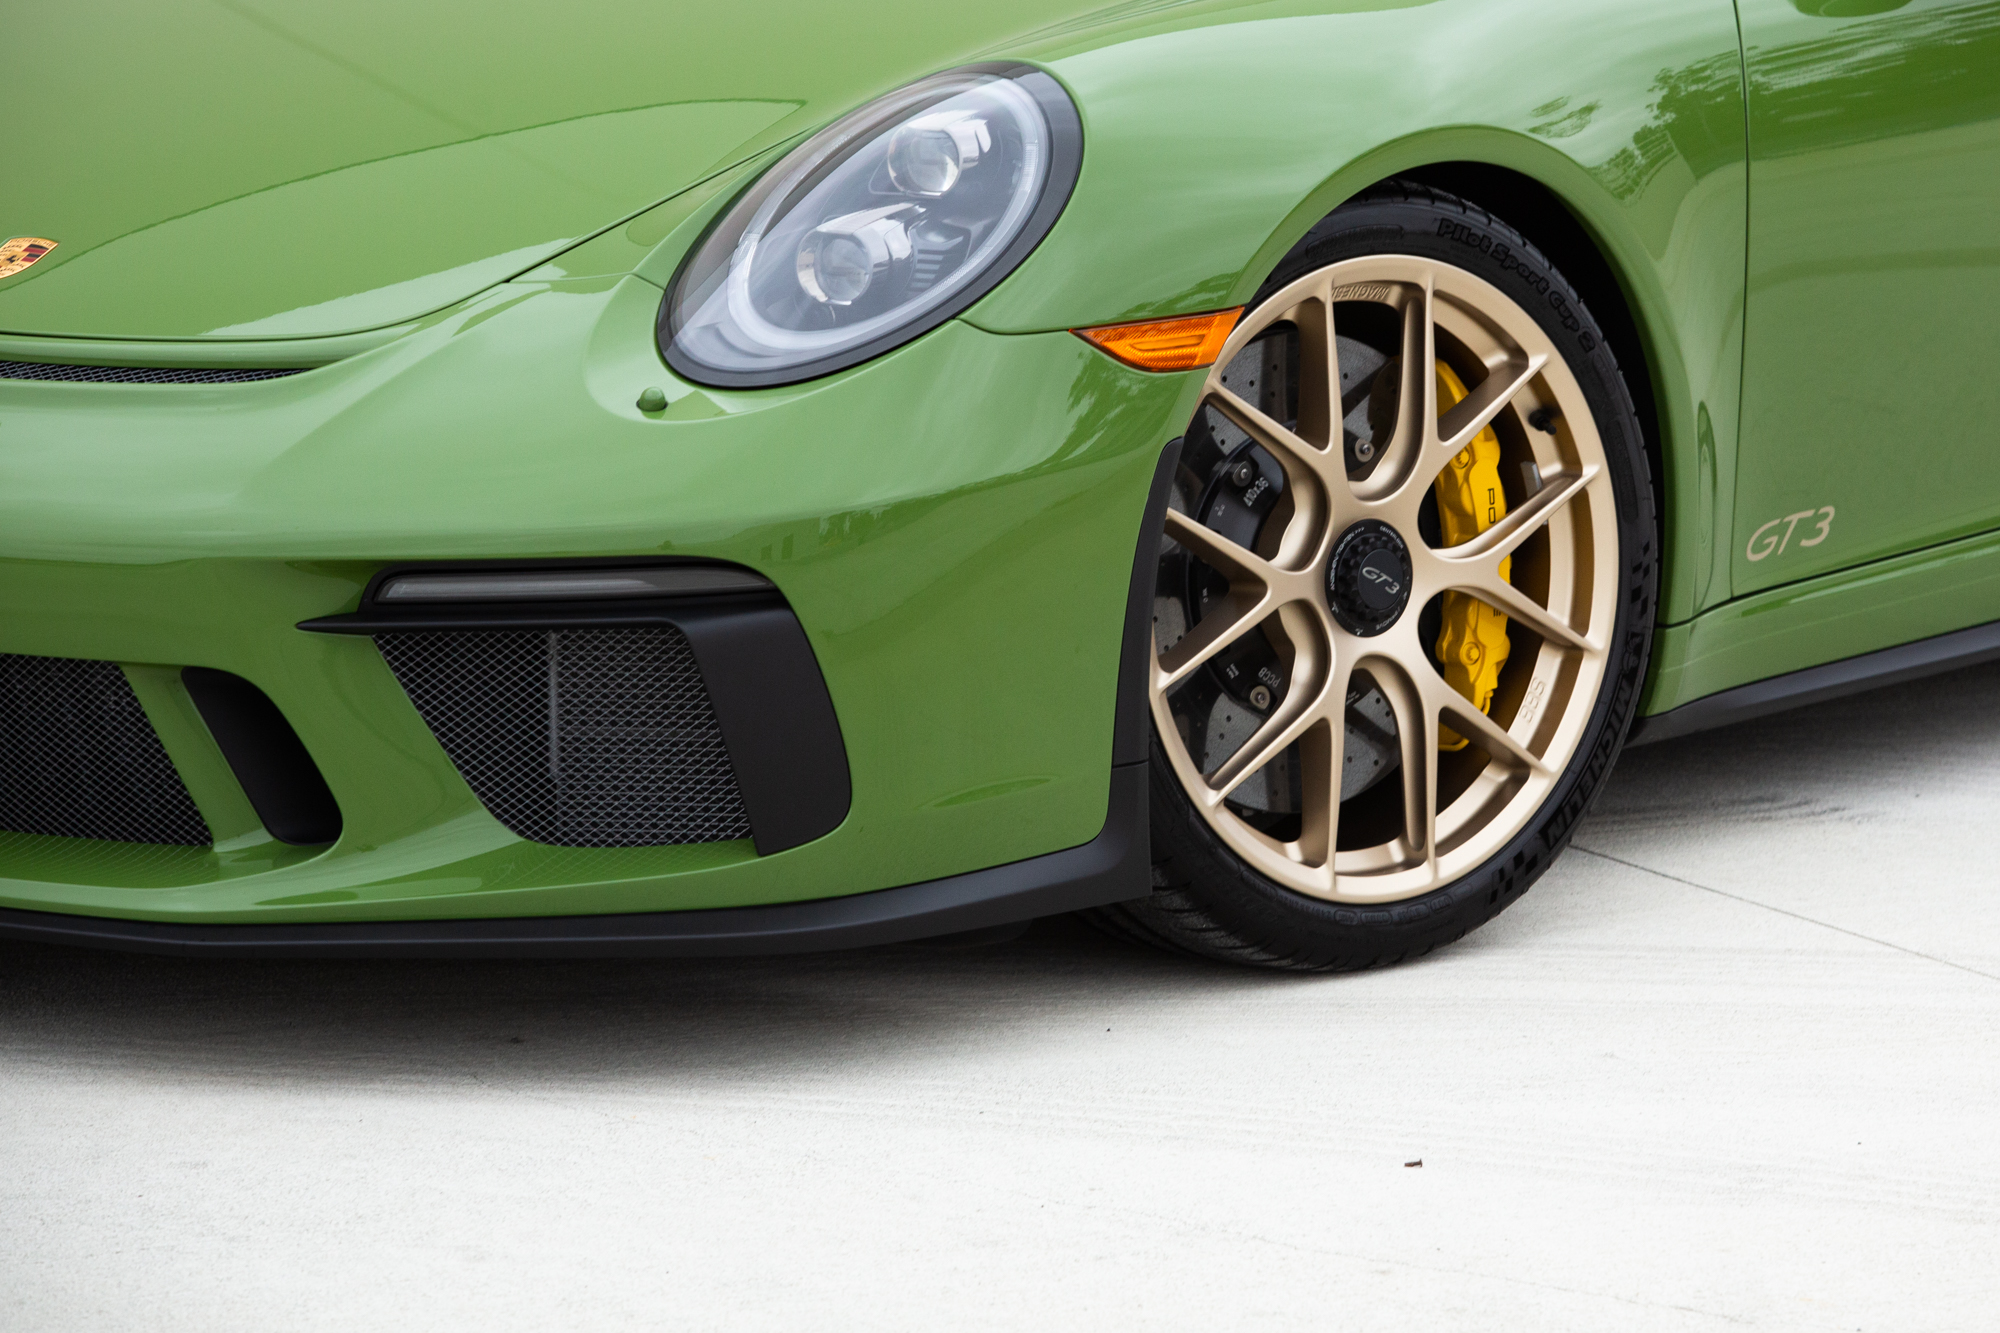 Olive Green GT3 - RXX - August 15, 2018